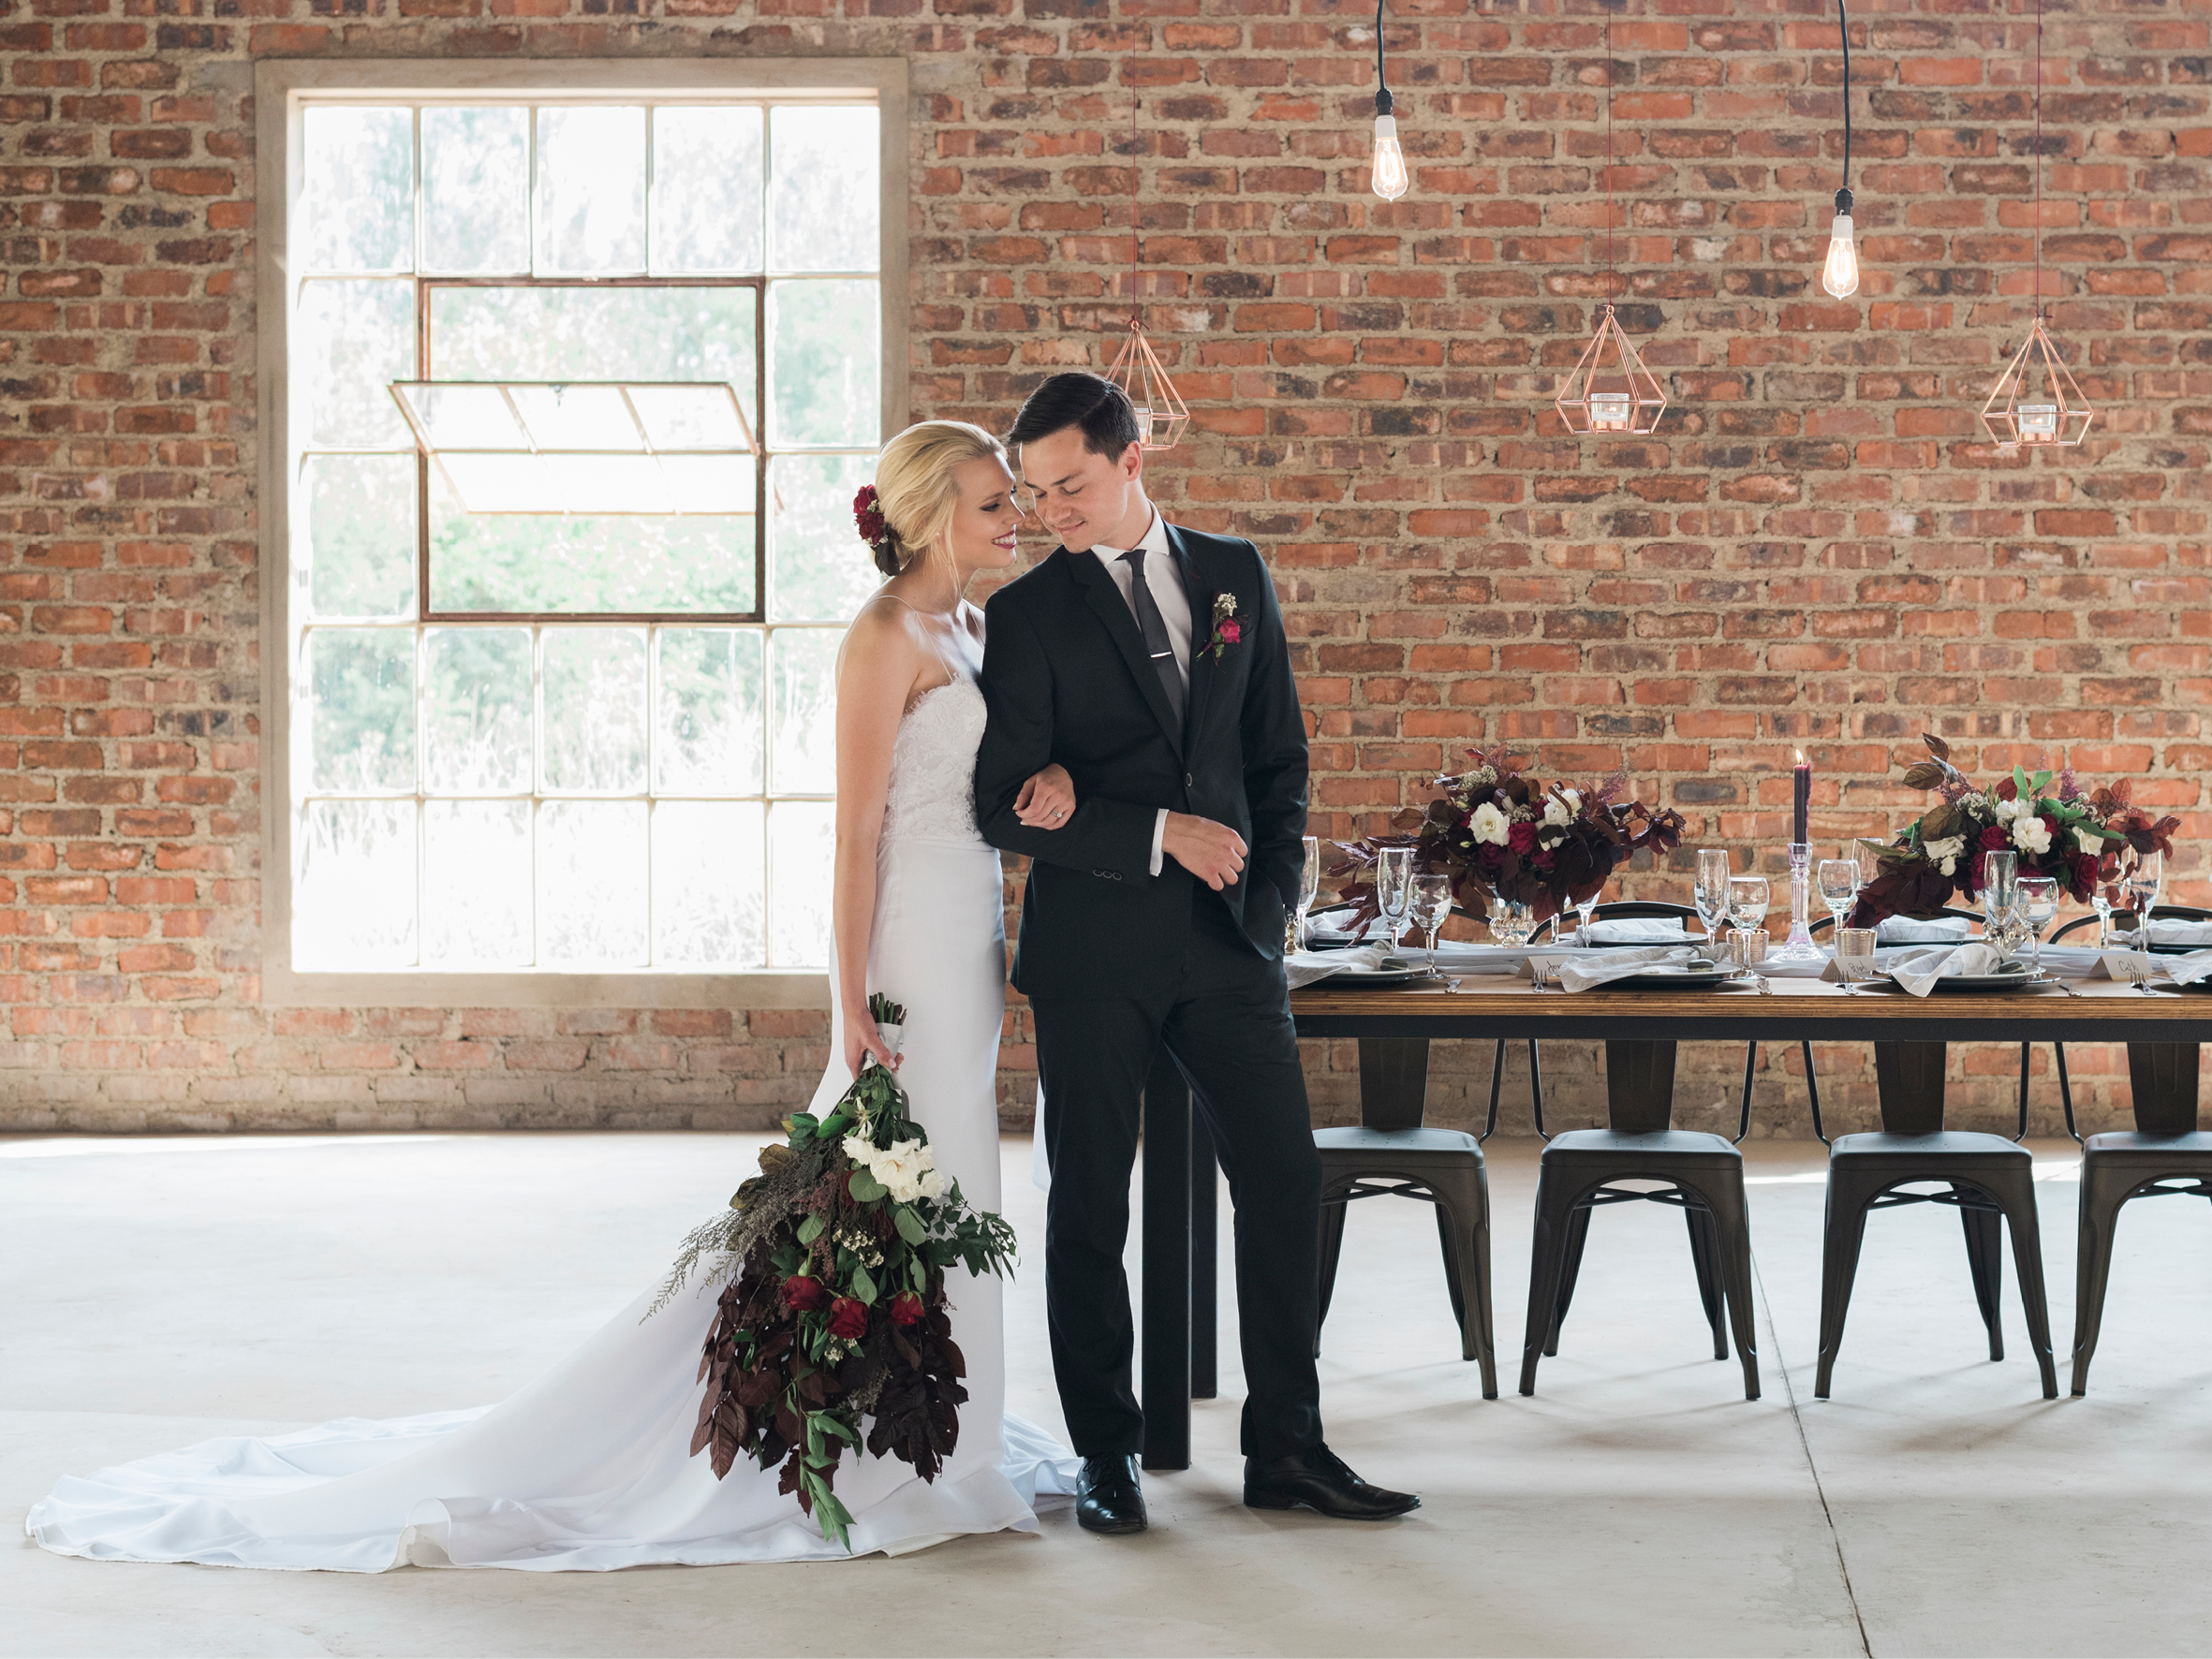 BronwynAlyson_Wedding_Styled shoot Industrial Modernism_16.jpg